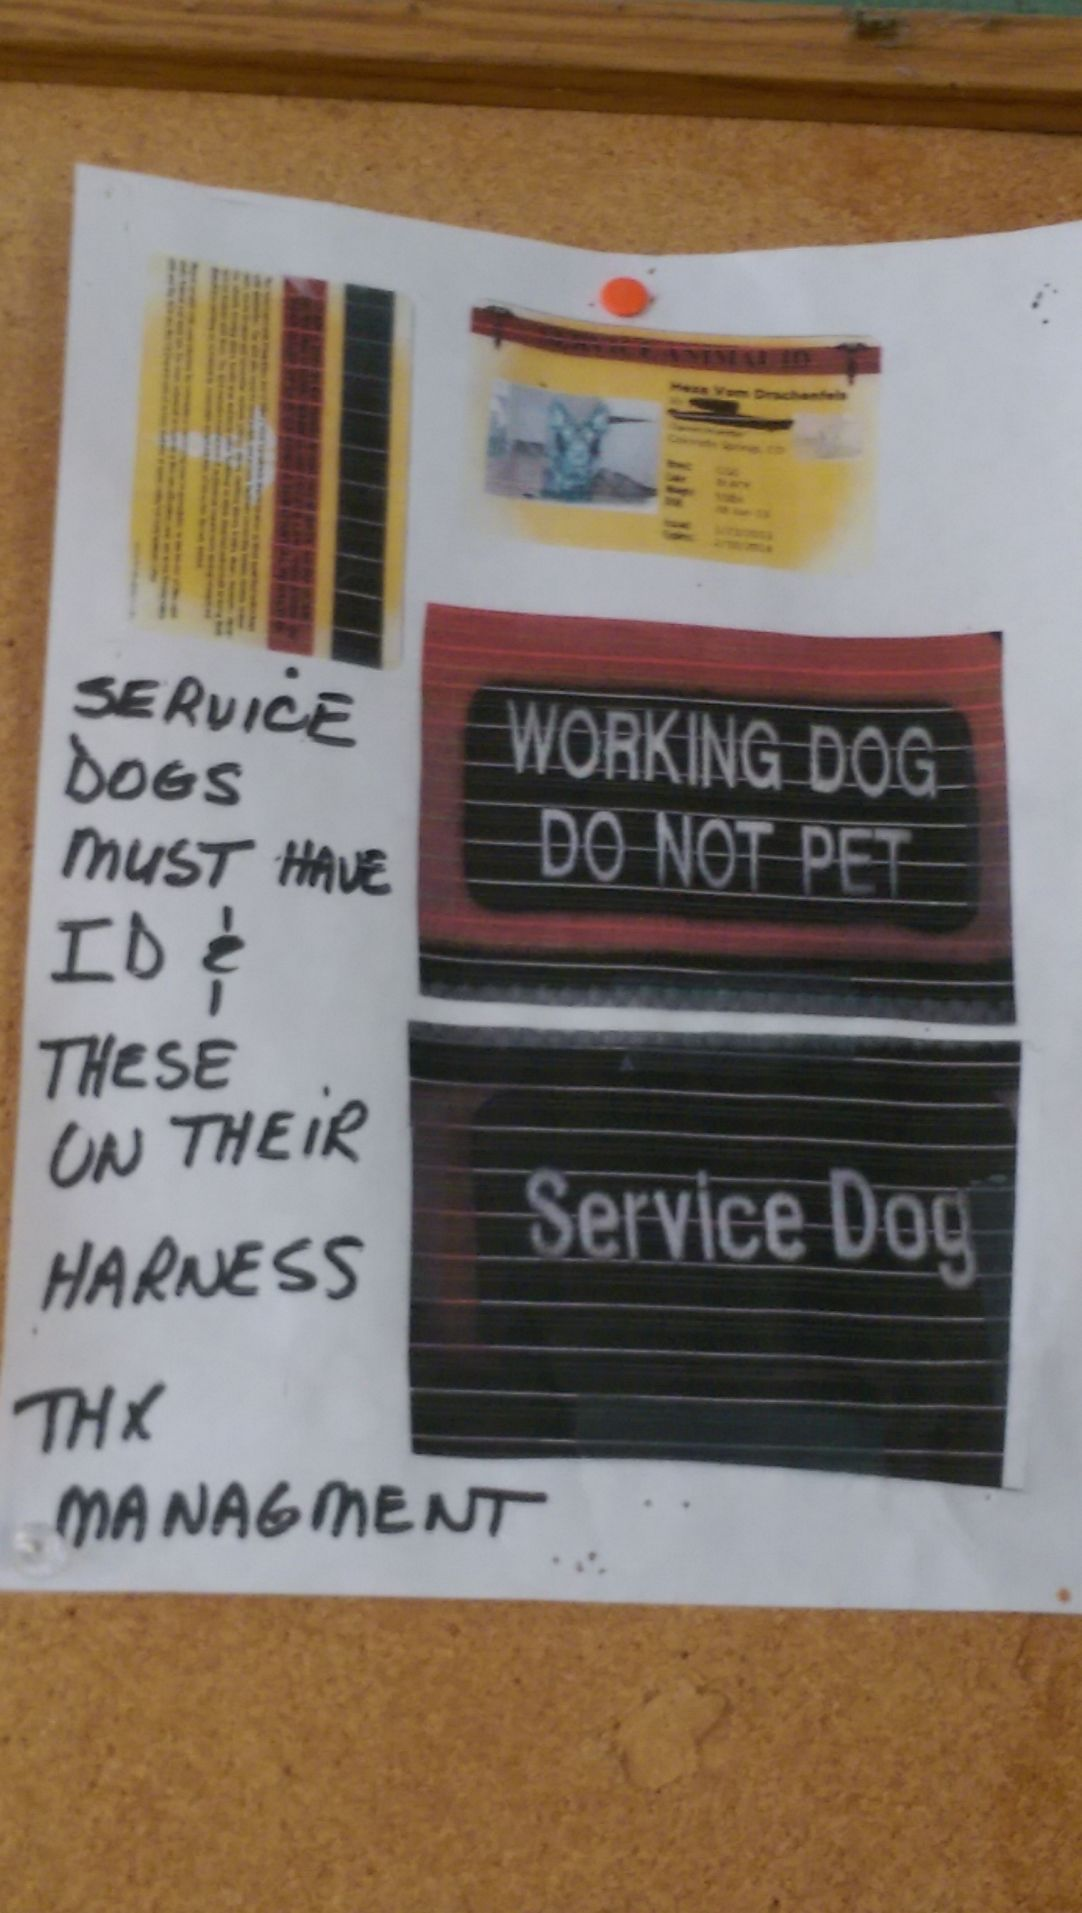 False Service Dogs On Rise As Vests Fake Ids Readily Available